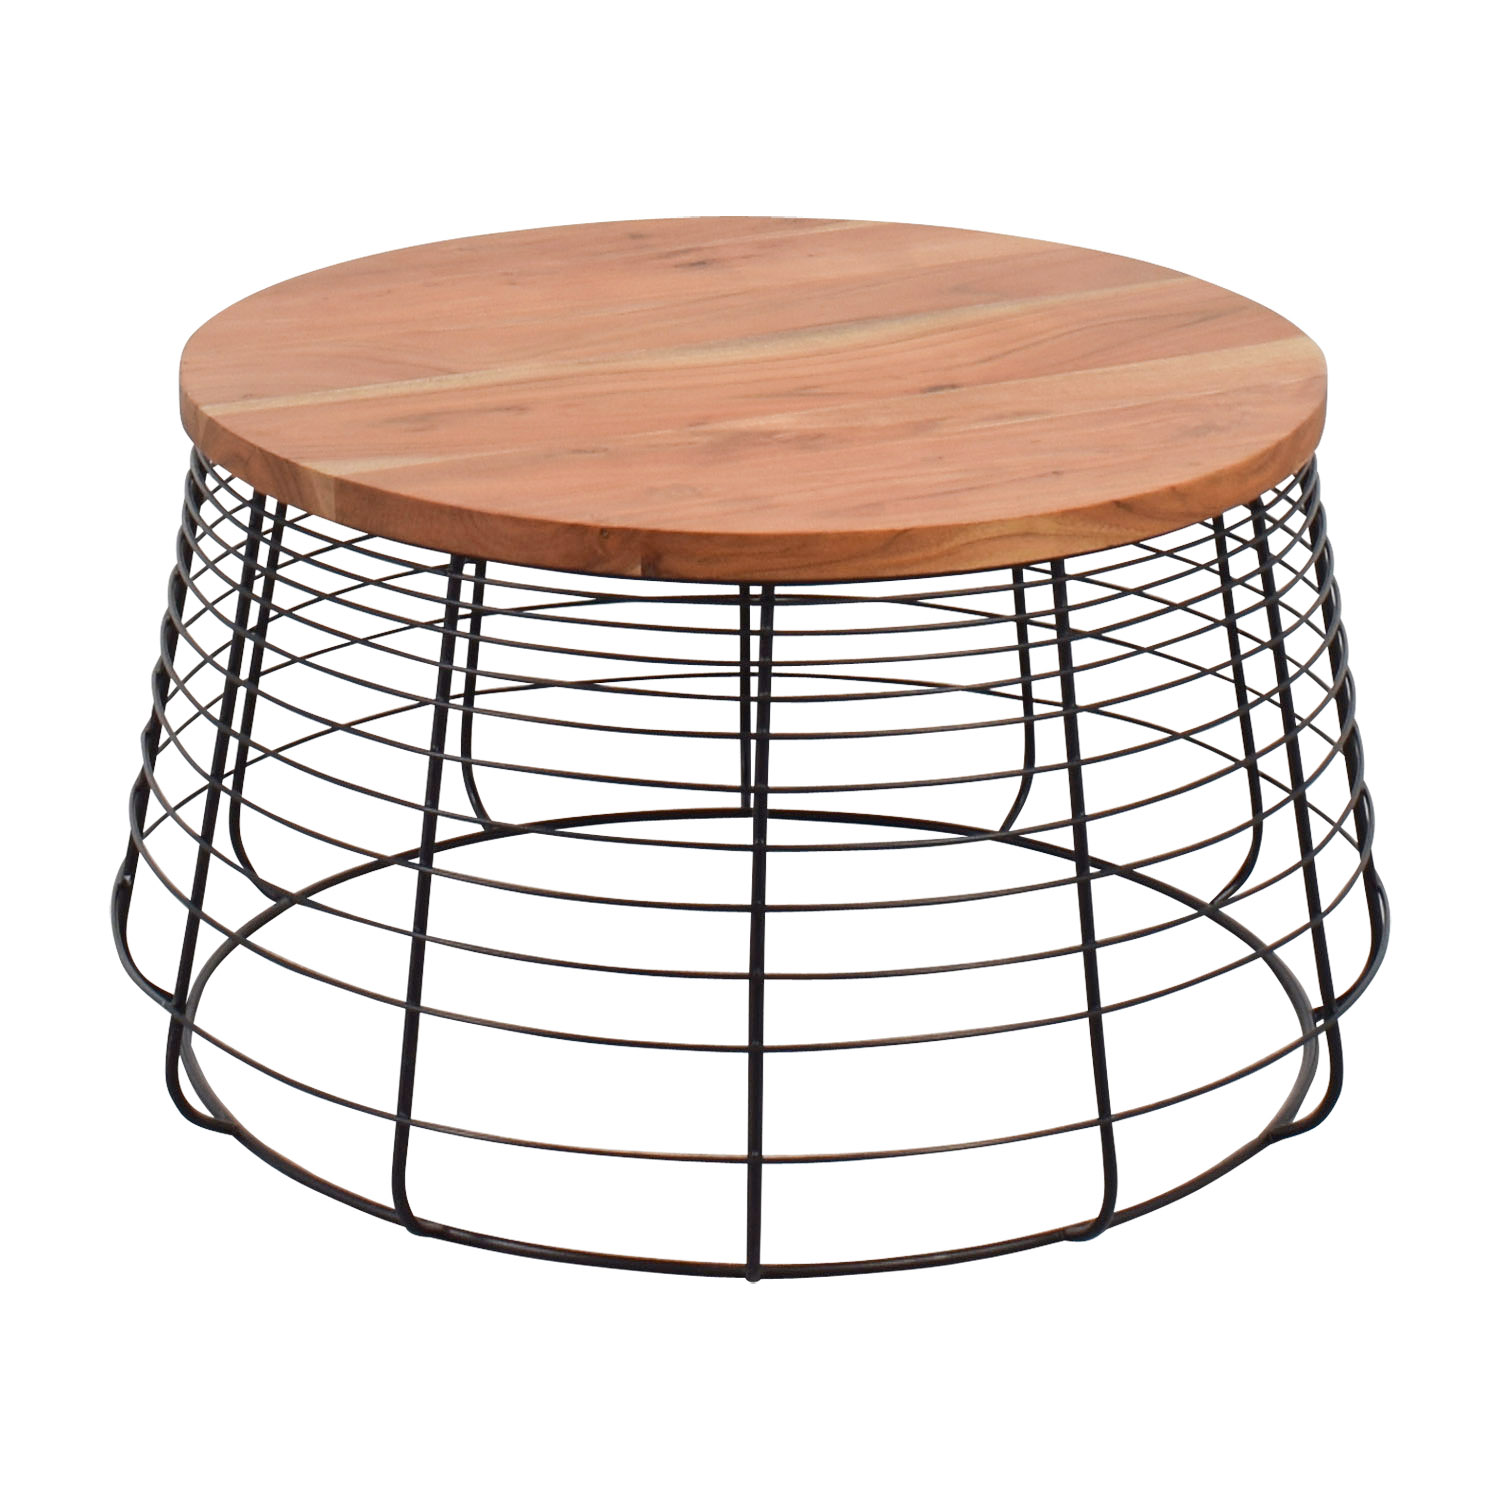 54 off cb2 cb2 apis round coffee table tables